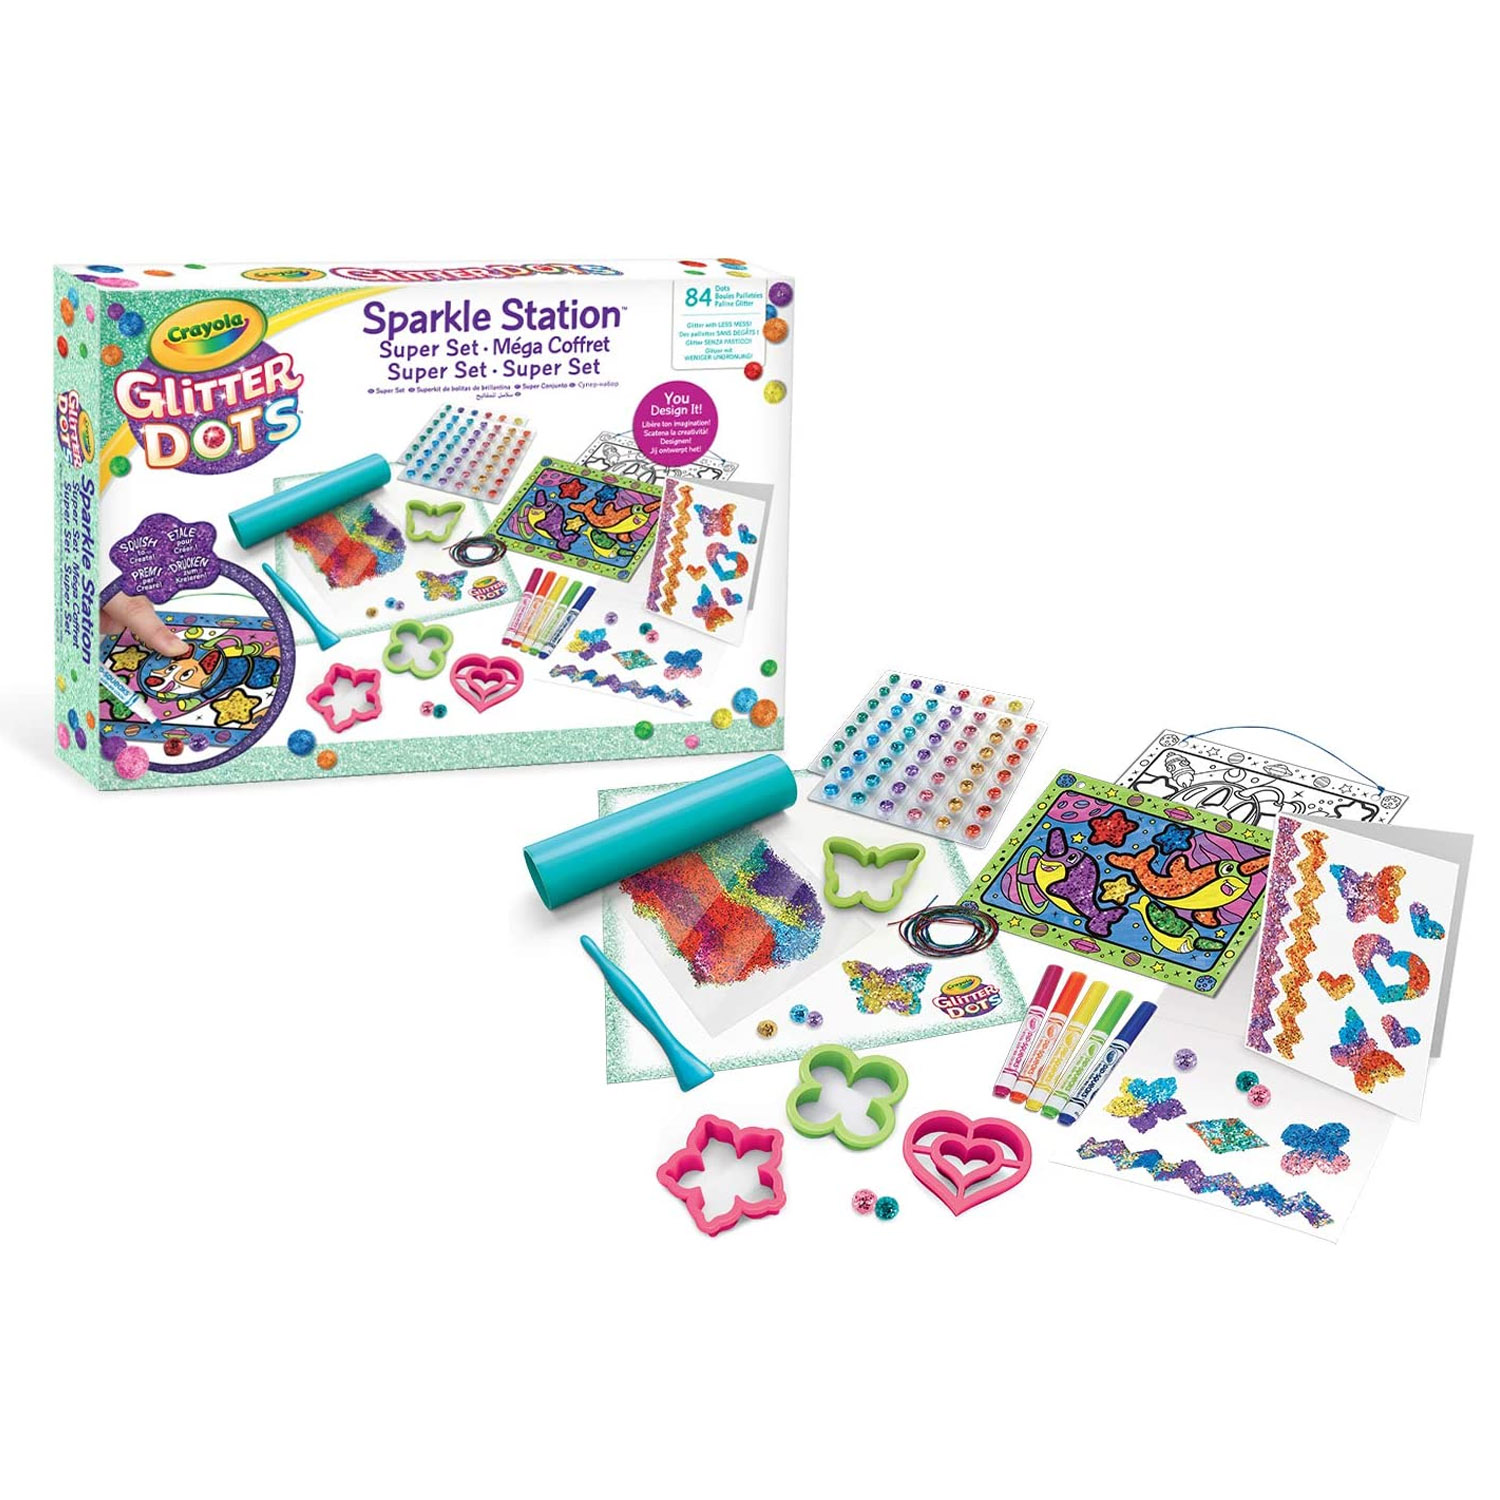 Crayola-Kids-Mouldable-Glitter-Dots-Assortments-OR-Sparkle-Station-Creative-Art thumbnail 3